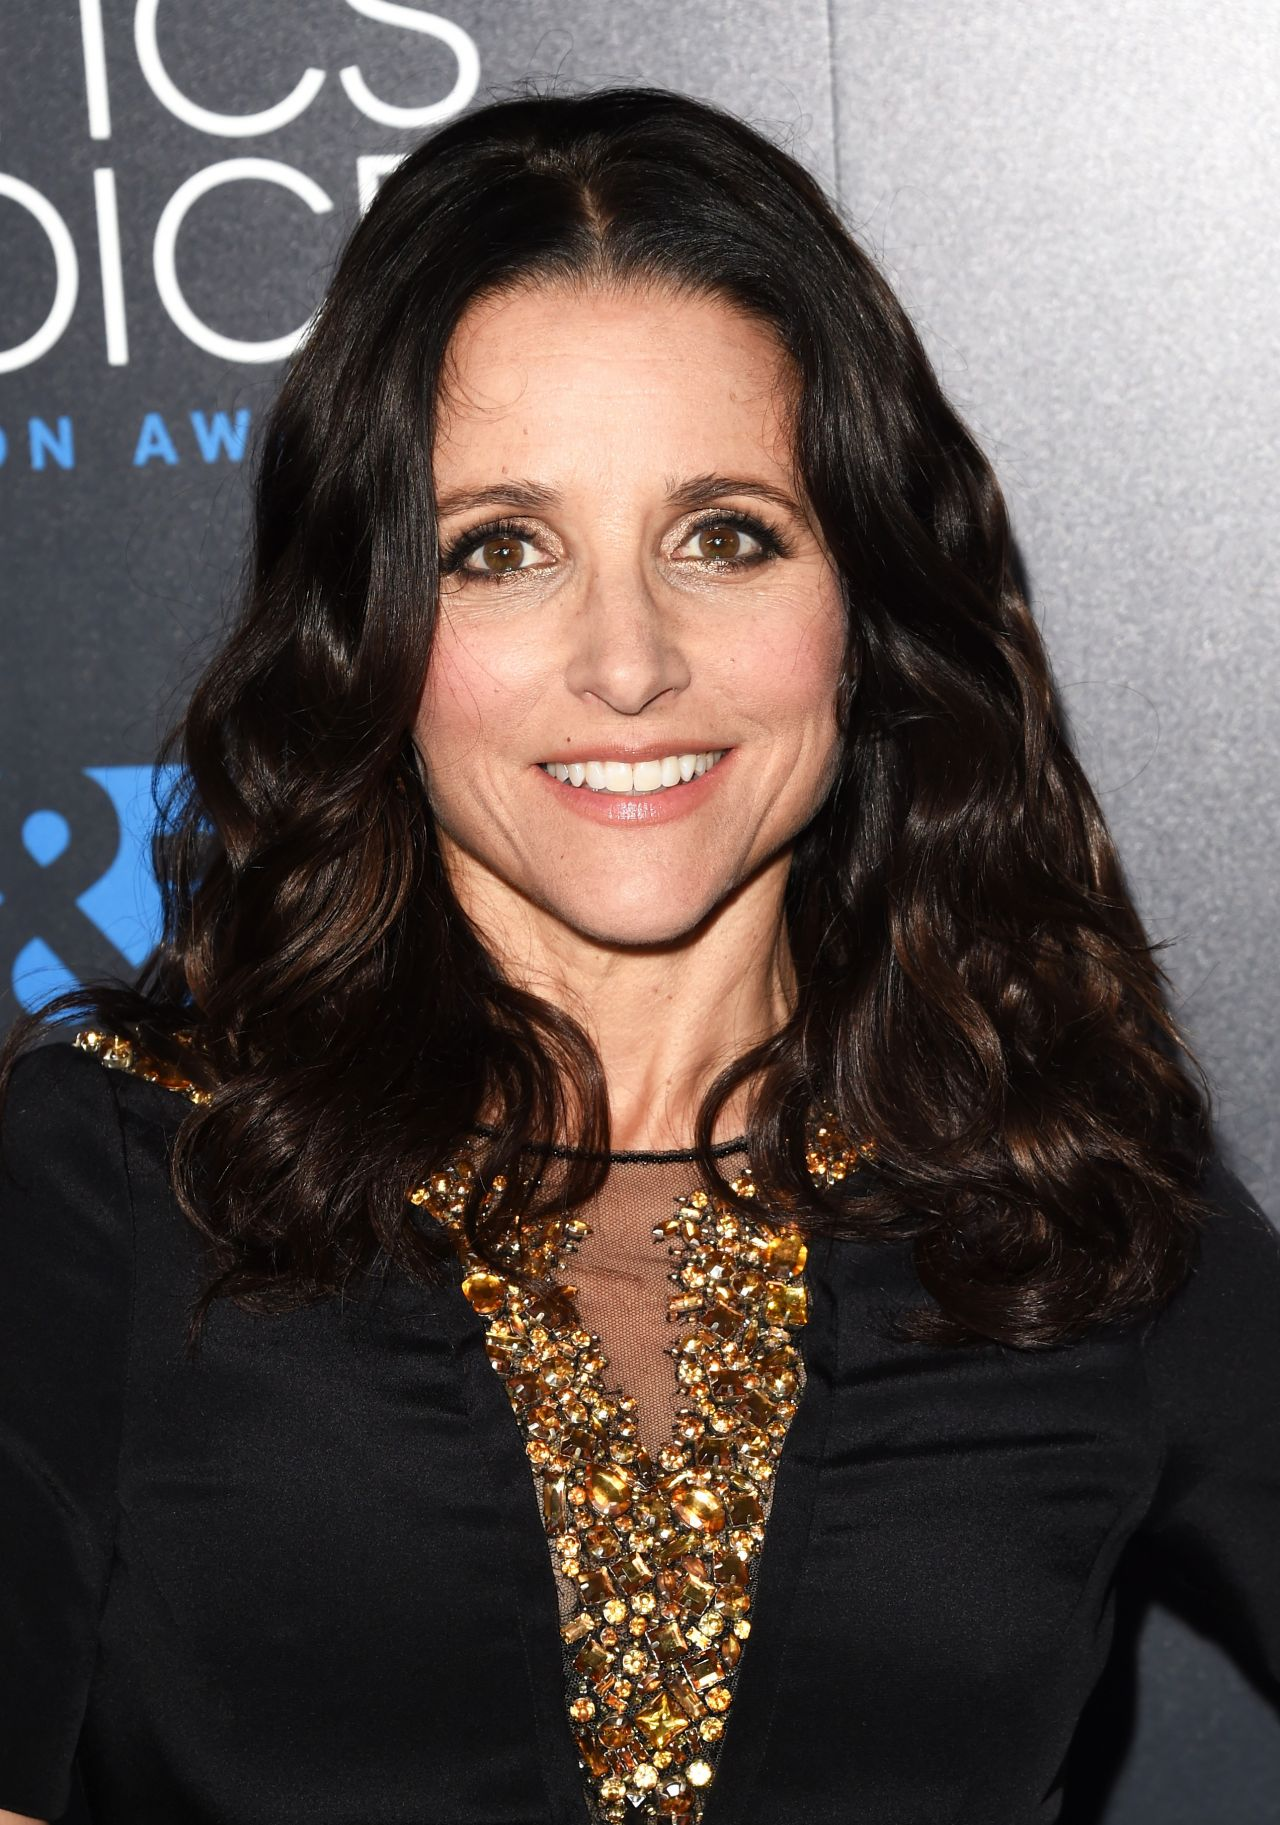 Julia Louis Dreyfus Latest Photos Celebmafia